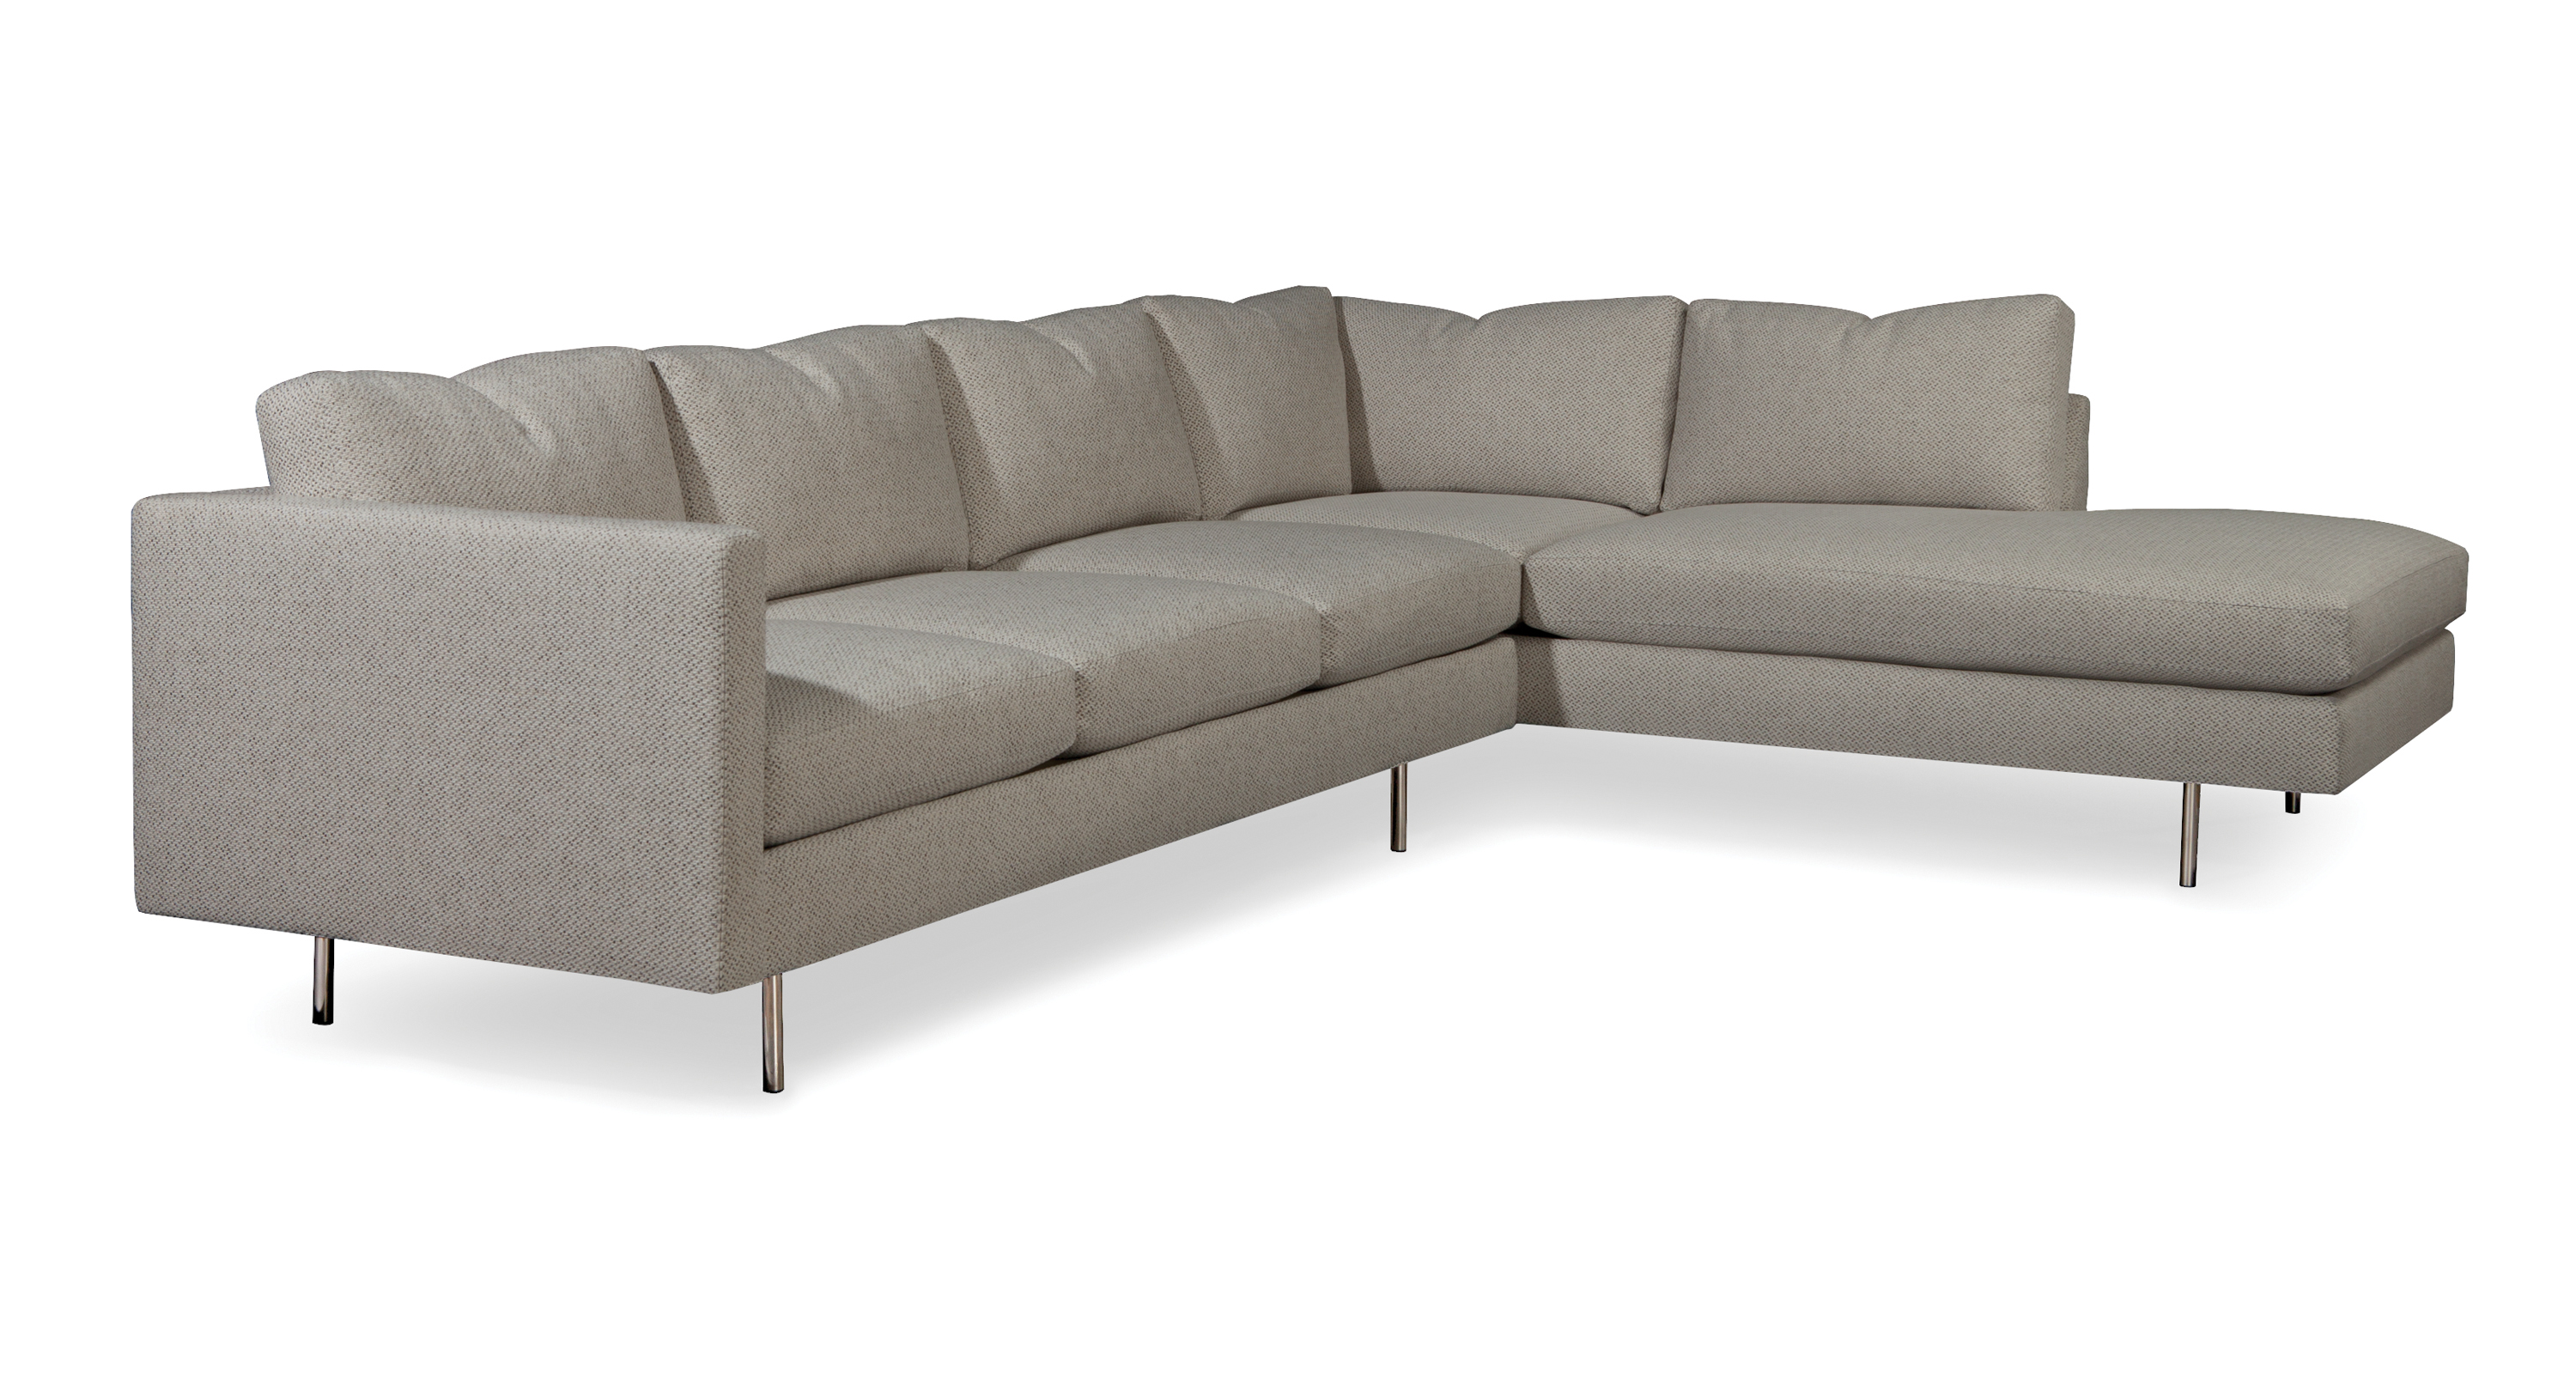 855 301 Pb Laf Sofa W 84 D 34 H 26 Inches Seat Depth 22 Height 17 Arm